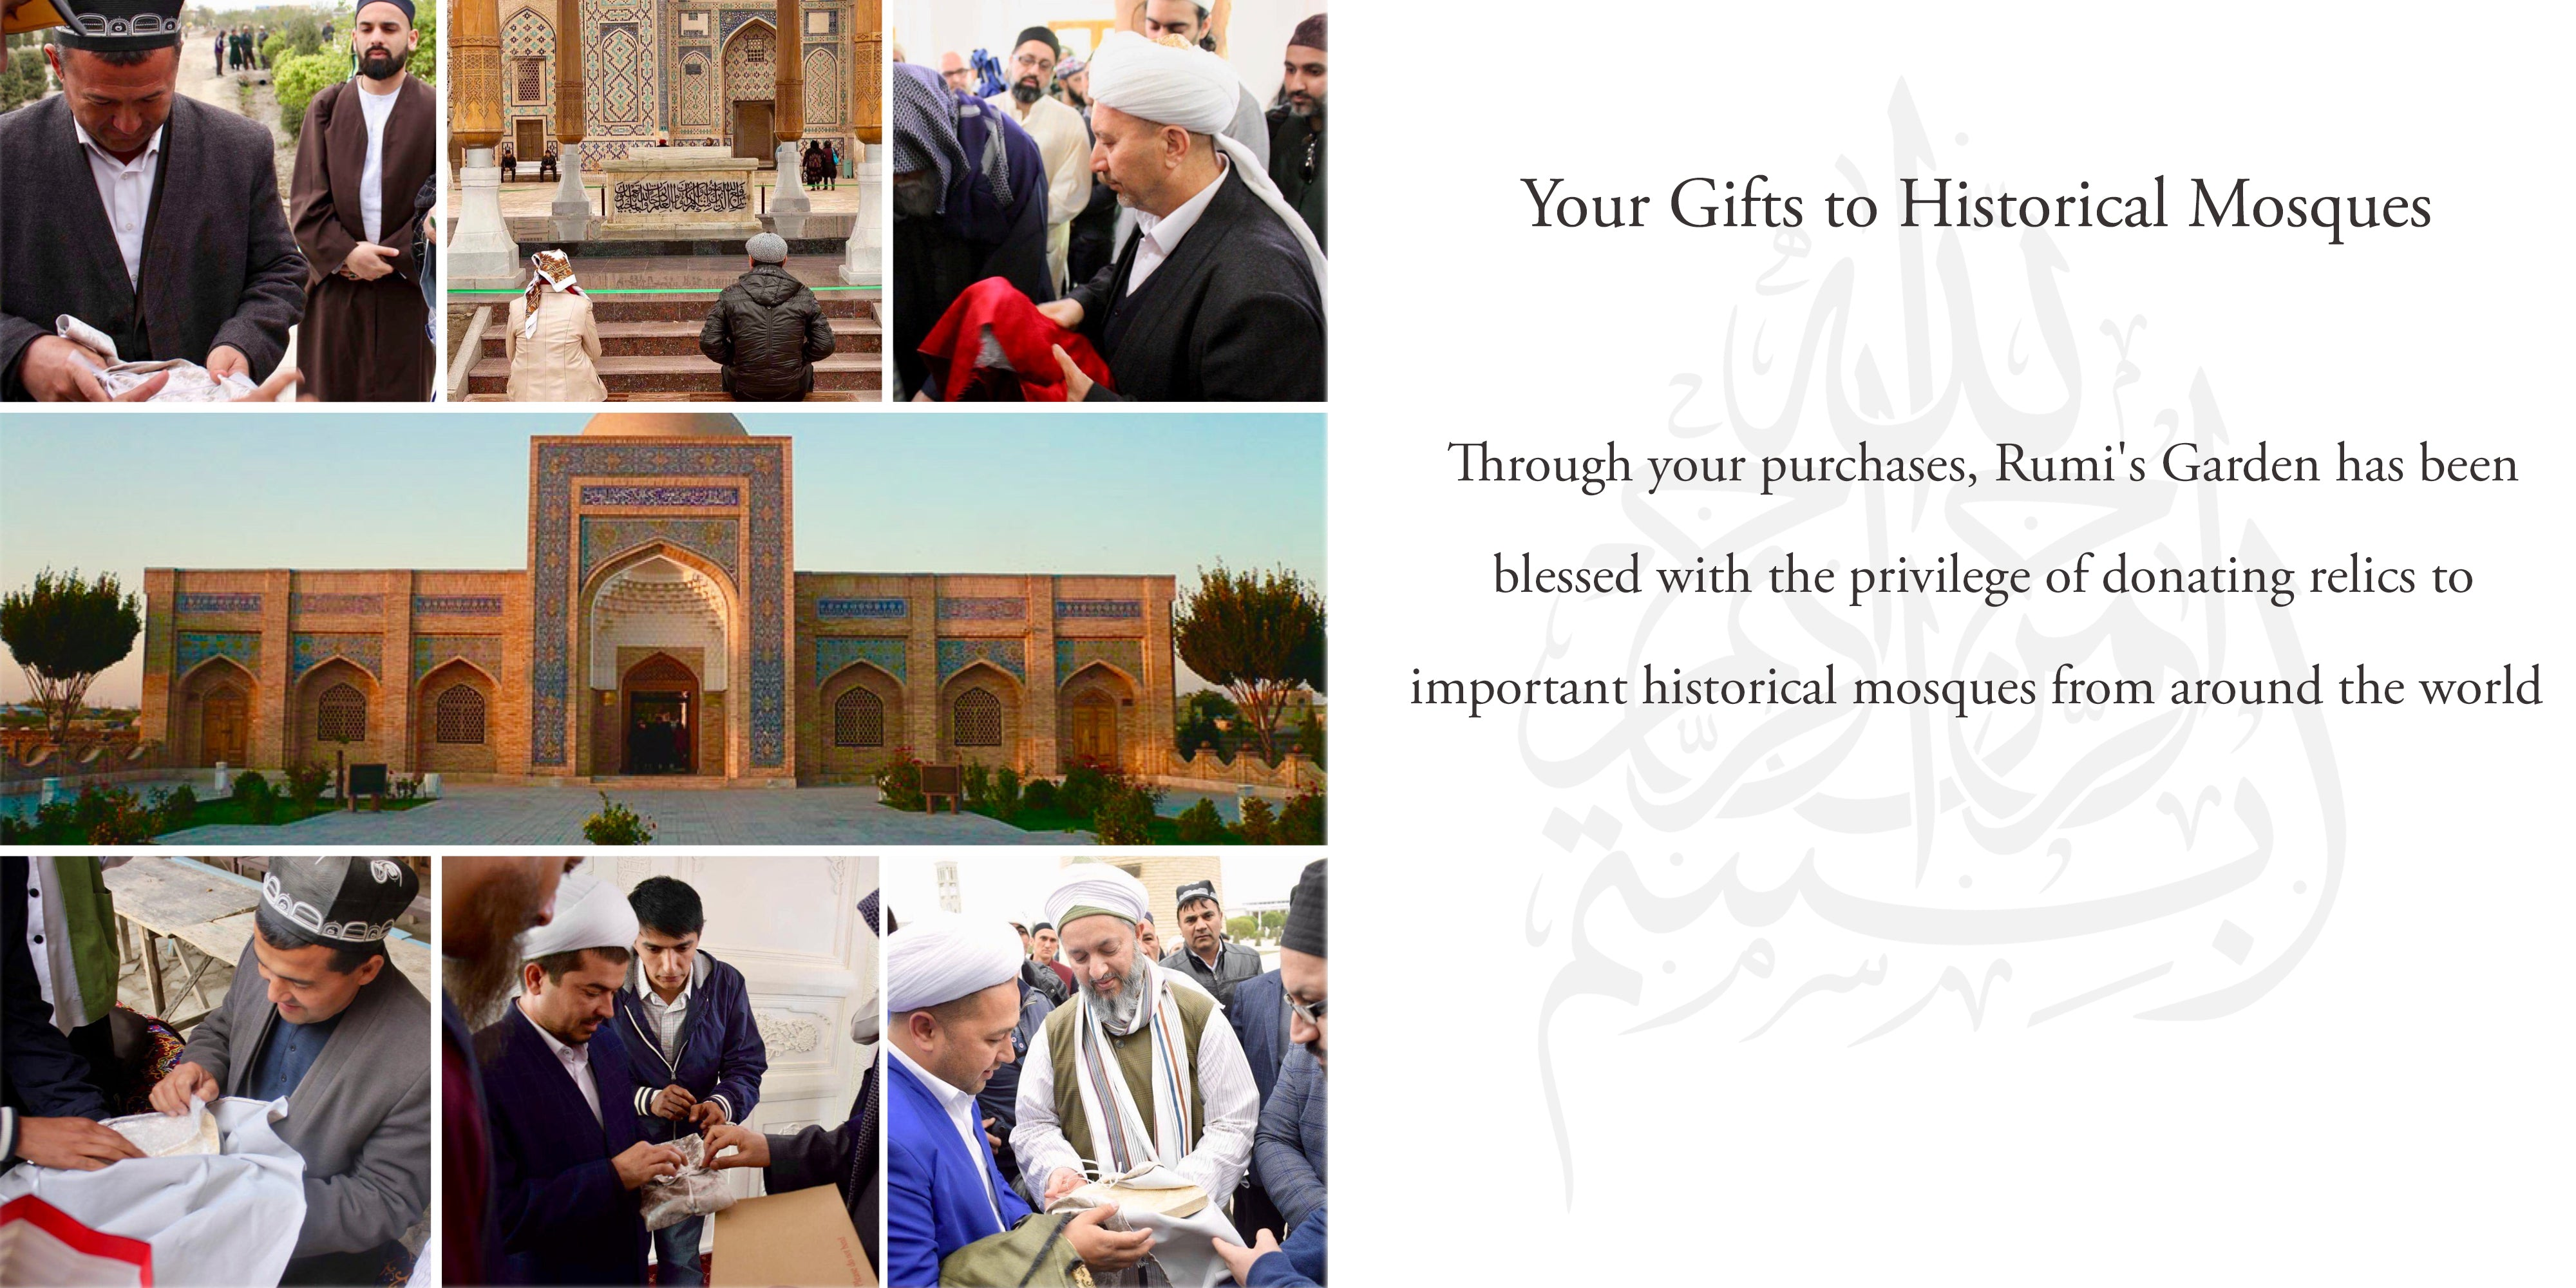 Your Gifts to Historical Mosques